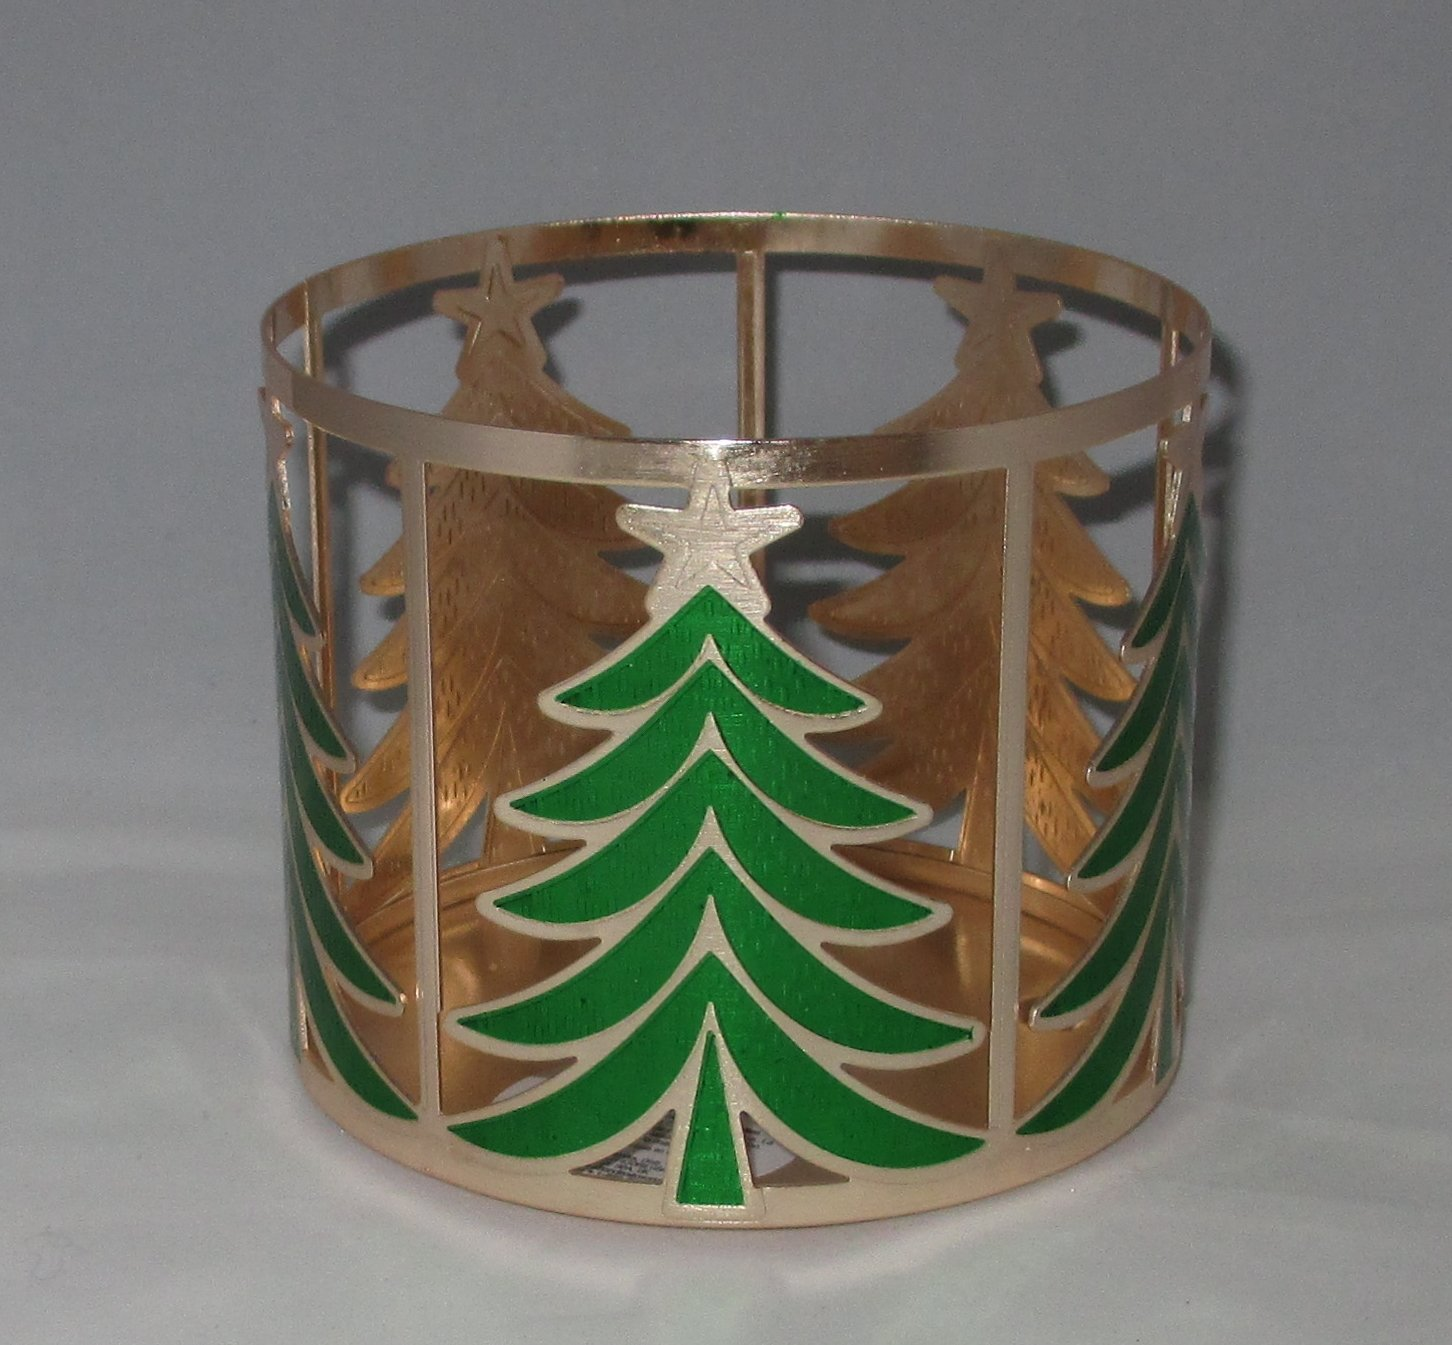 Bath & Body Works Gold Christmas Trees 3 Wick Candle Sleeve Holder